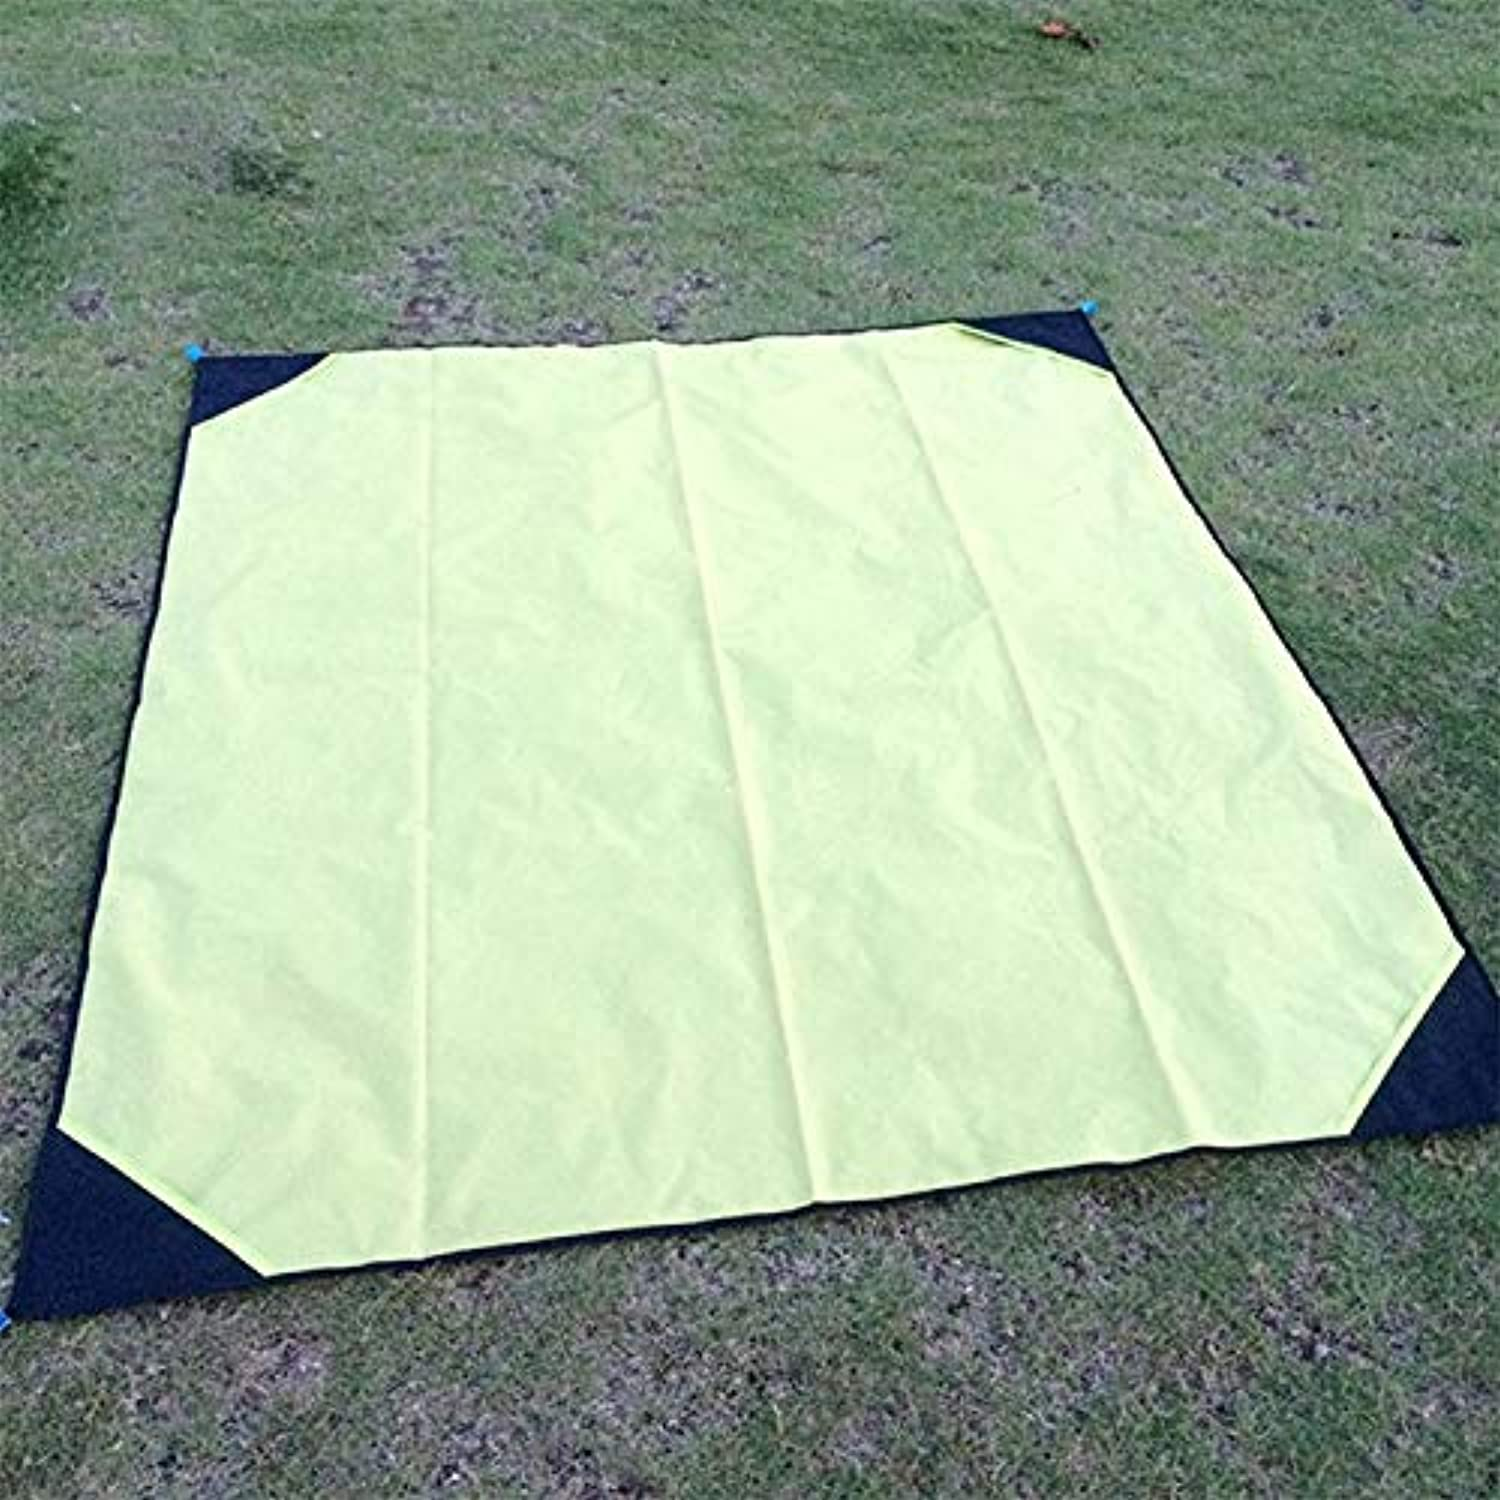 Outdoor Camping Mat Portable Outdoor Waterproof MoistureProof Camping Mat Foldable Lawn Mat, Size  140 x 180cm (orange) (color   Yellow)